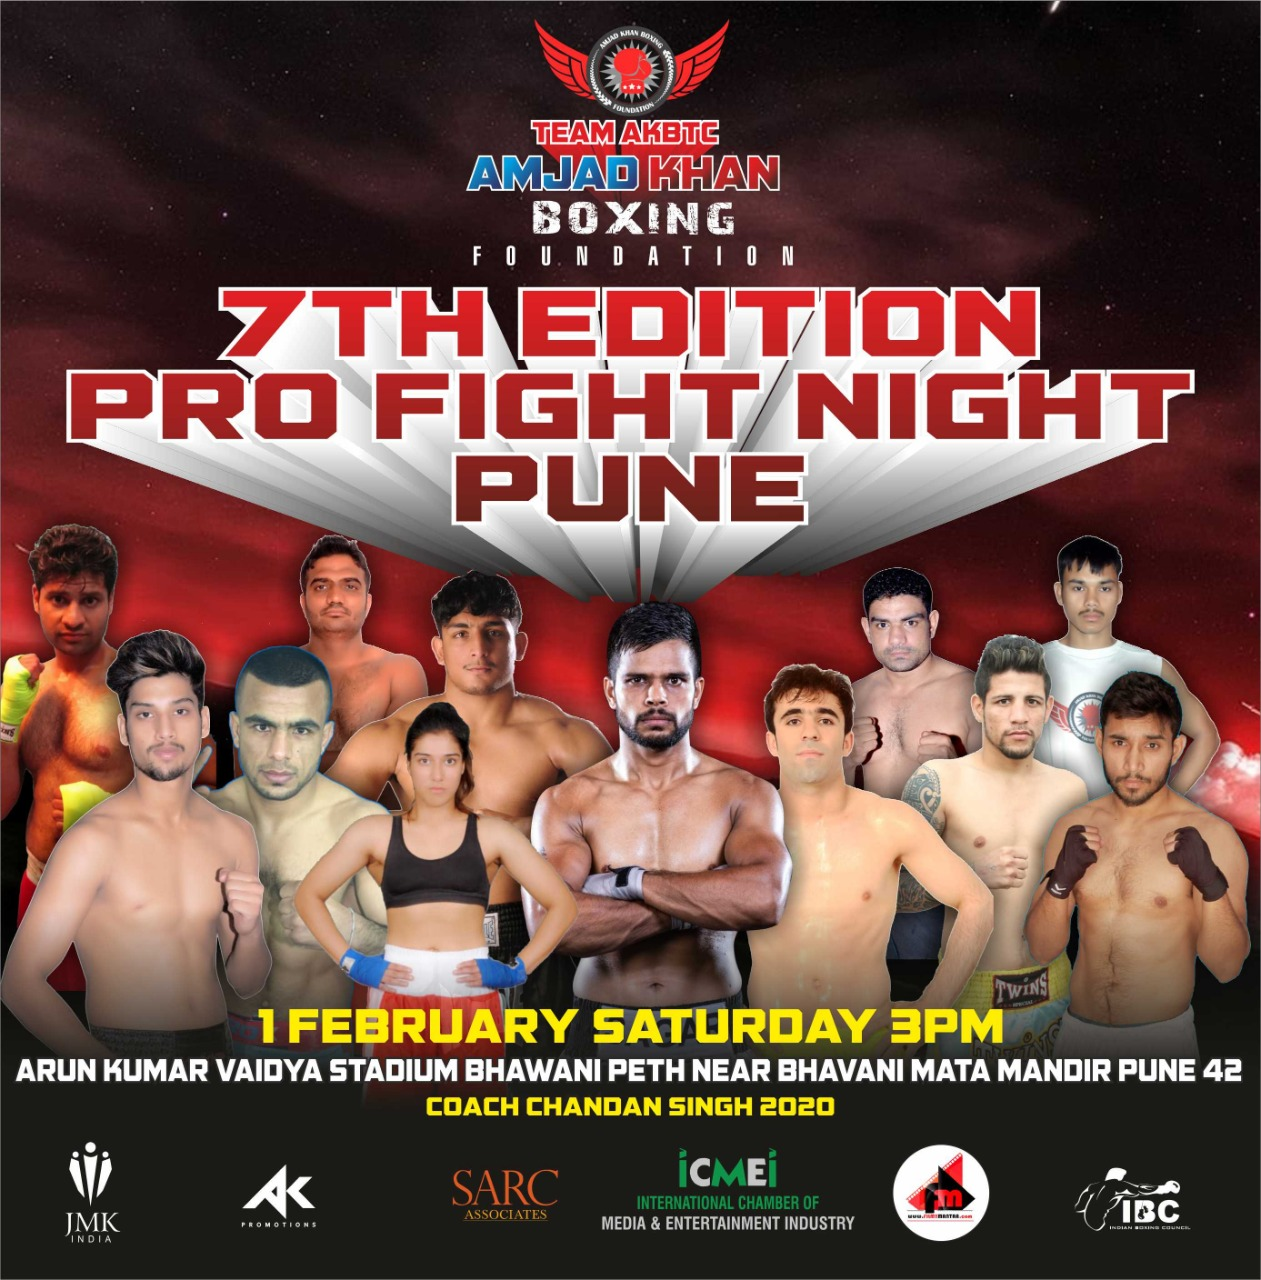 Amjad khan boxing training center (AKBTC) presents the 7th Pro Fight Night event in Pune for 1st February - Amjad